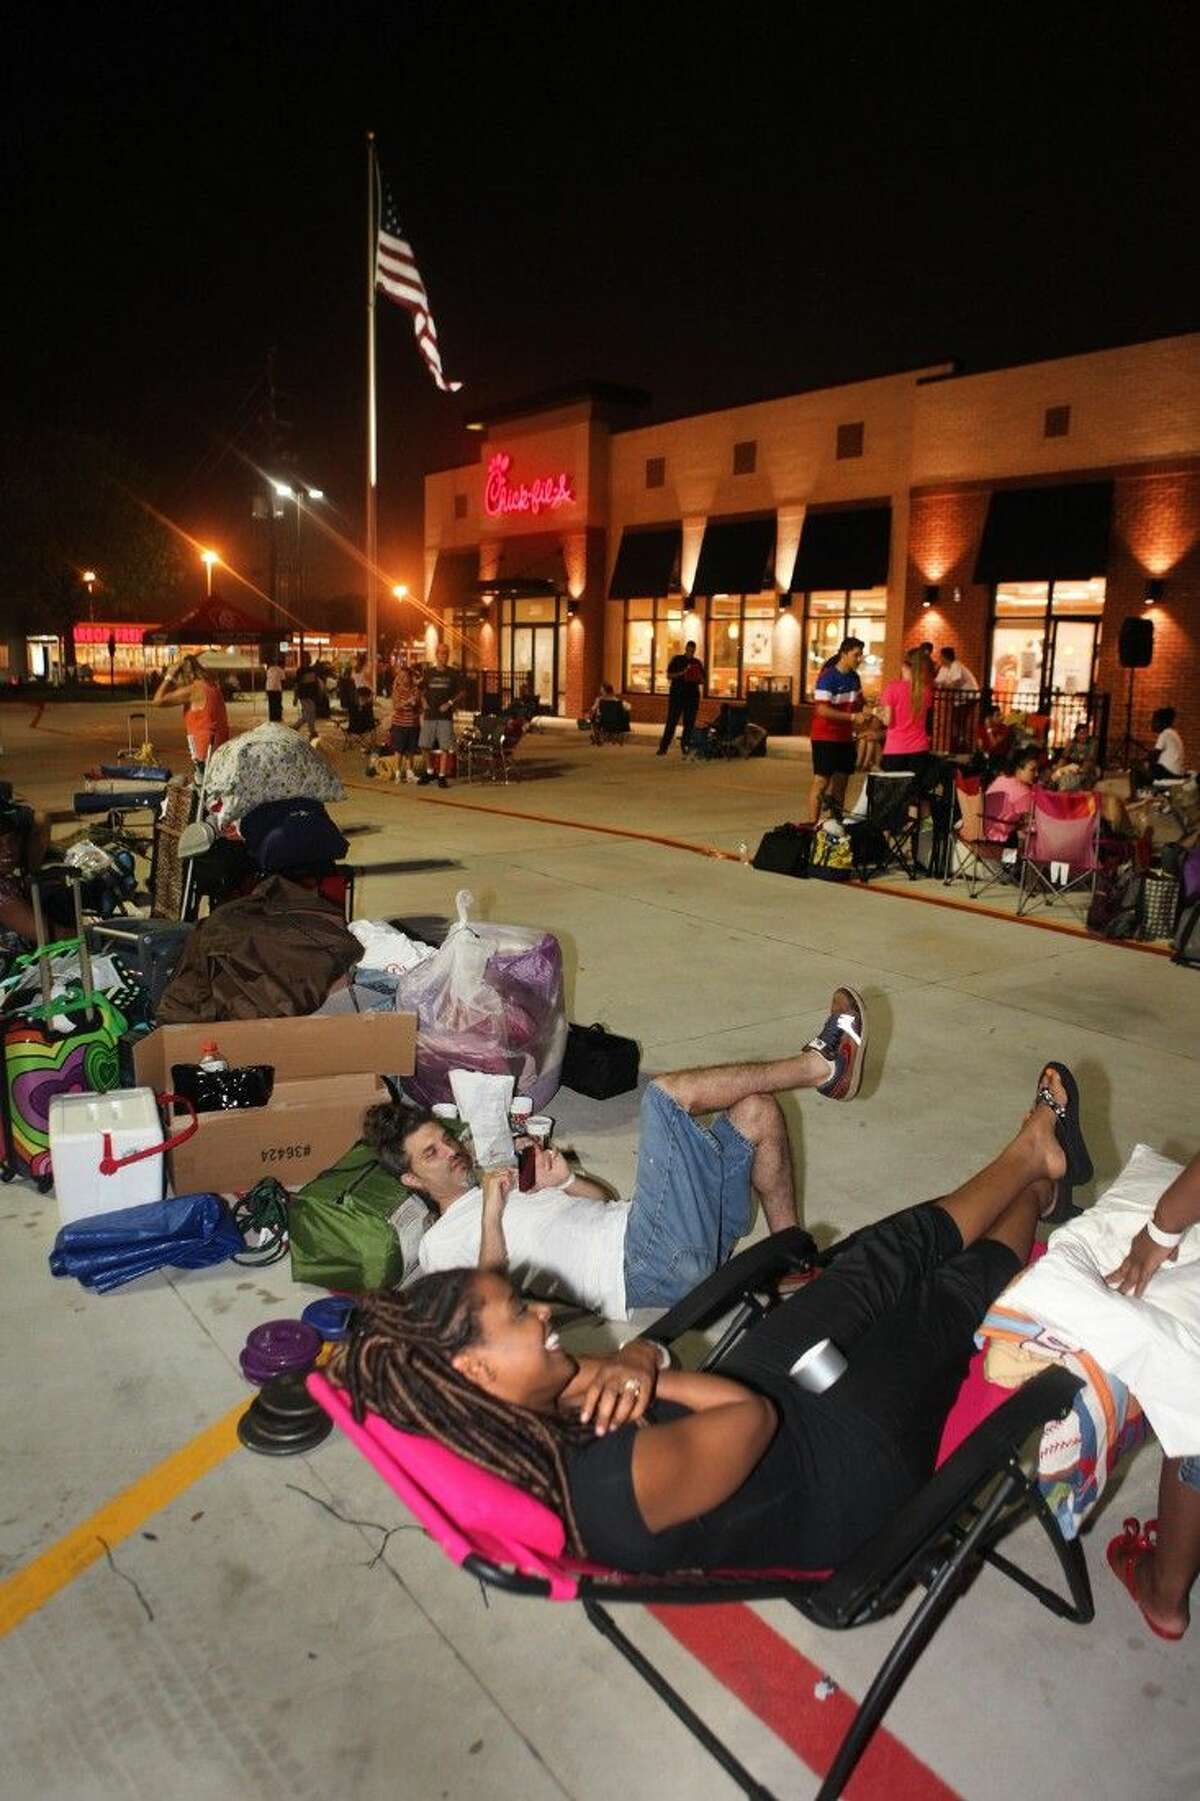 Tory and Rob Taylor of Houston camp out in the parking lot waiting for the newly rebuilt Chick-fil-A at Mason Road in Katy to open.